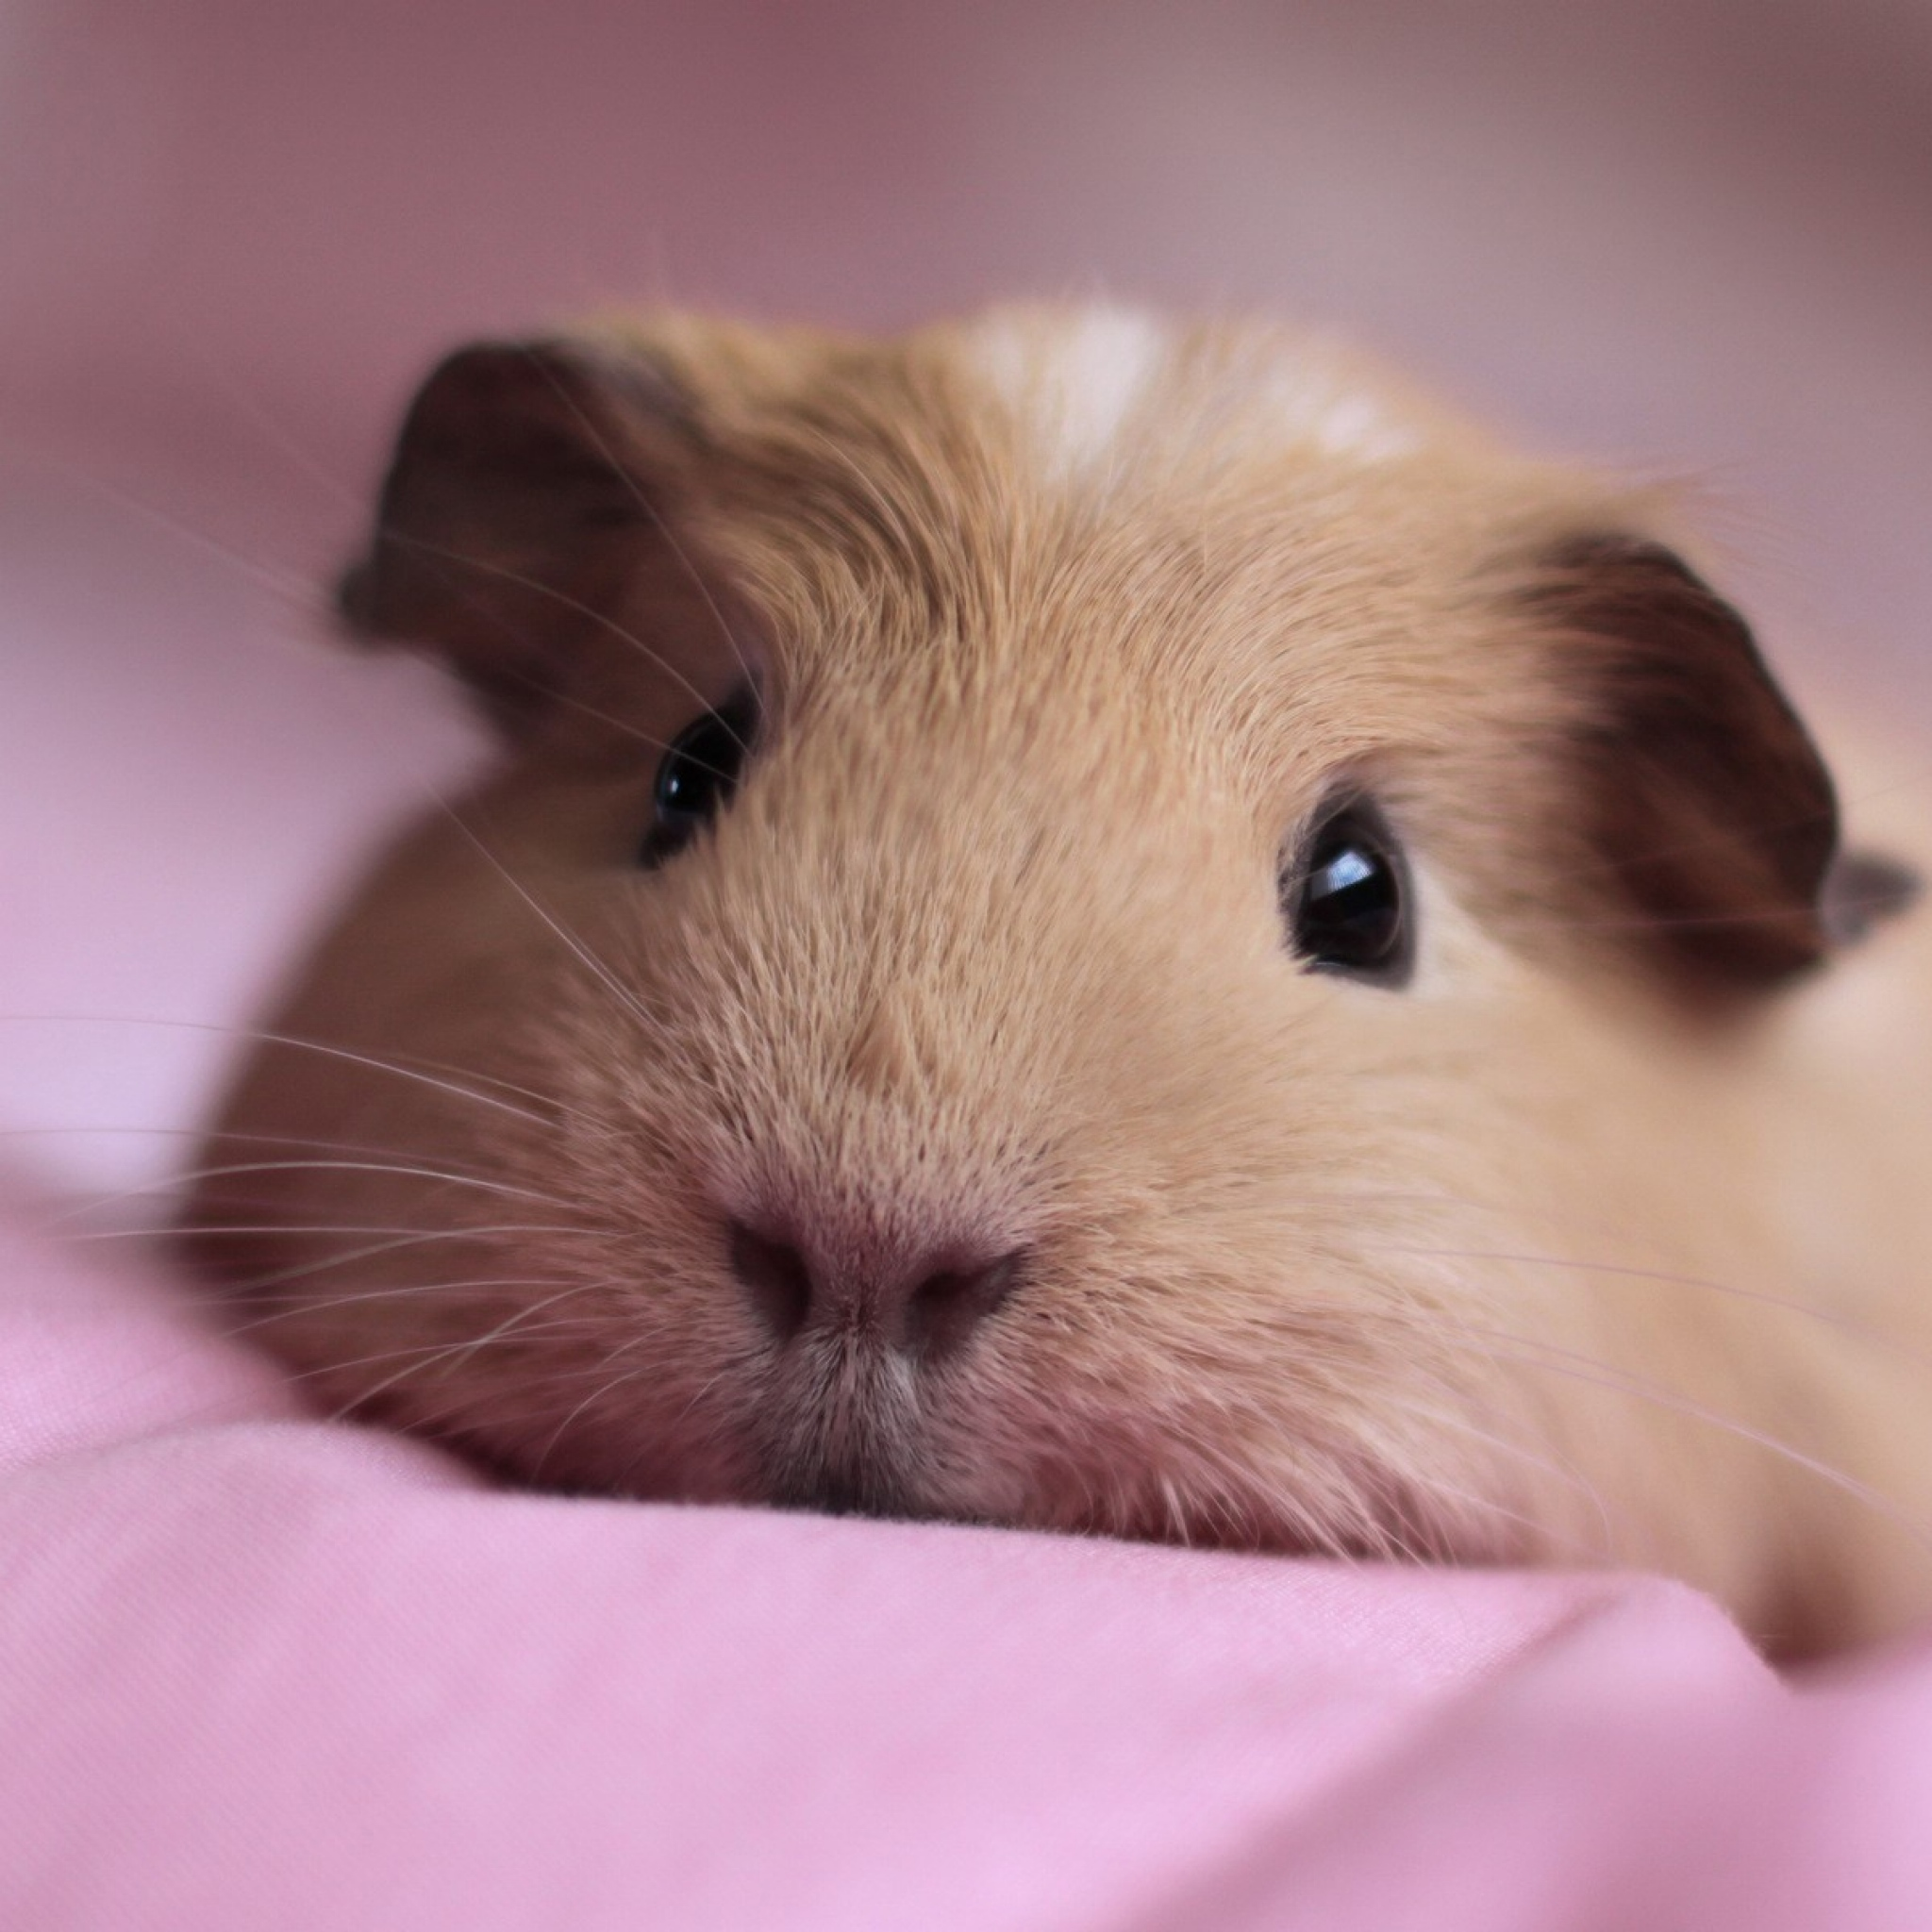 Guinea pig Snout Fluffy Down Cute Wallpaper Background New iPad 2048x2048